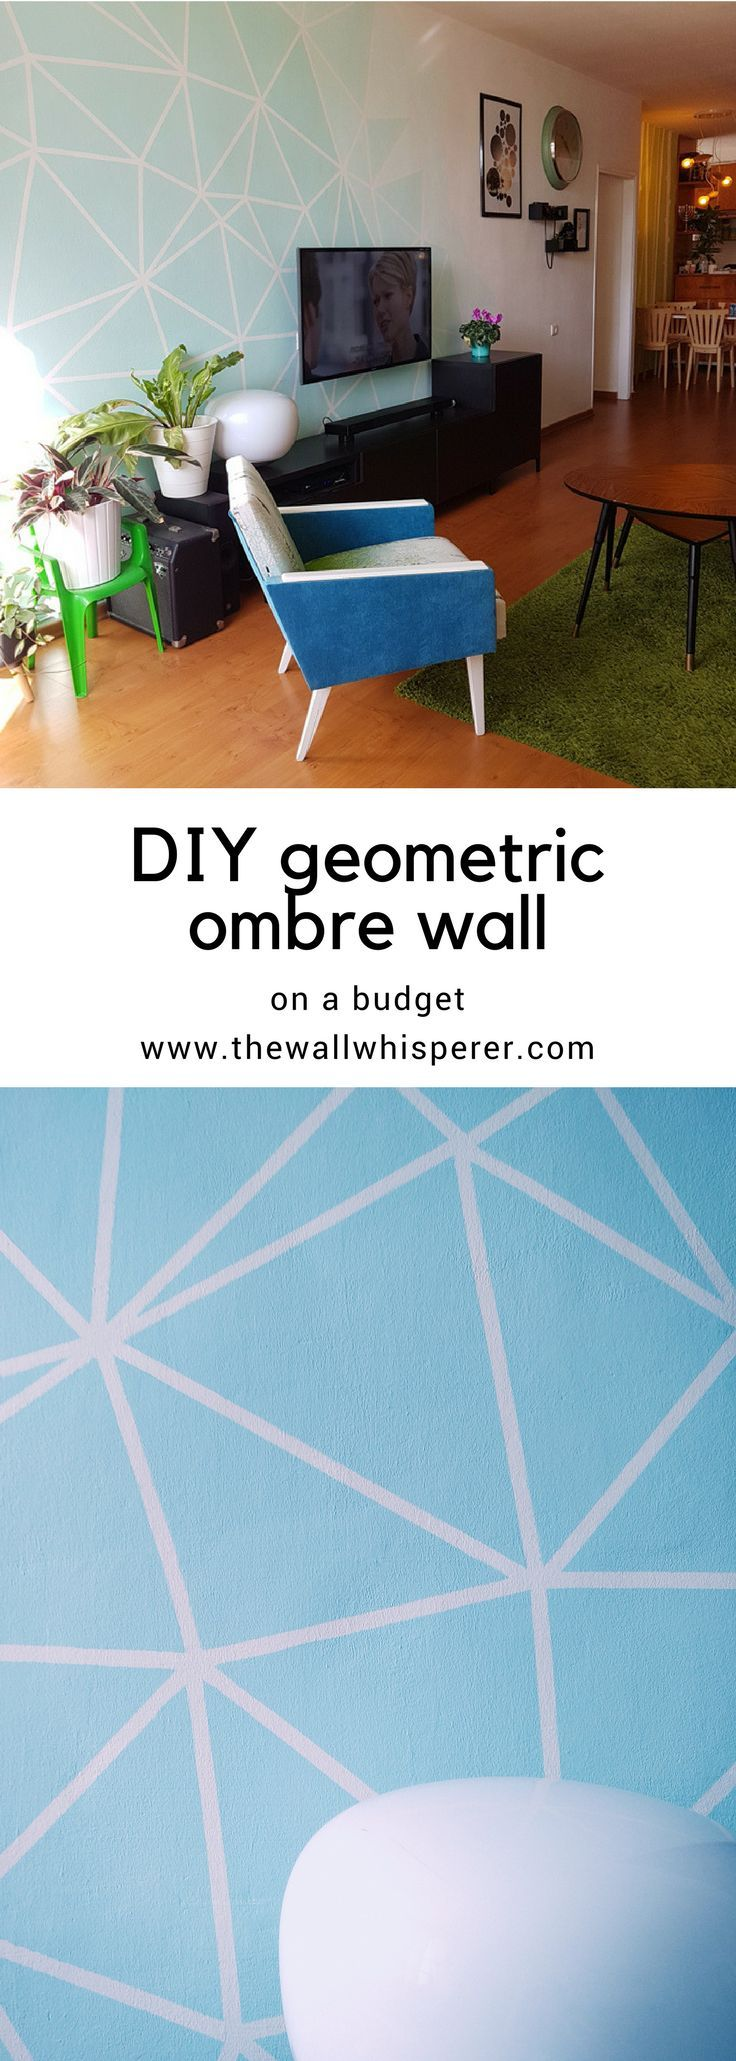 454 best Home Decor, Style, and DIY Projects images on Pinterest ...